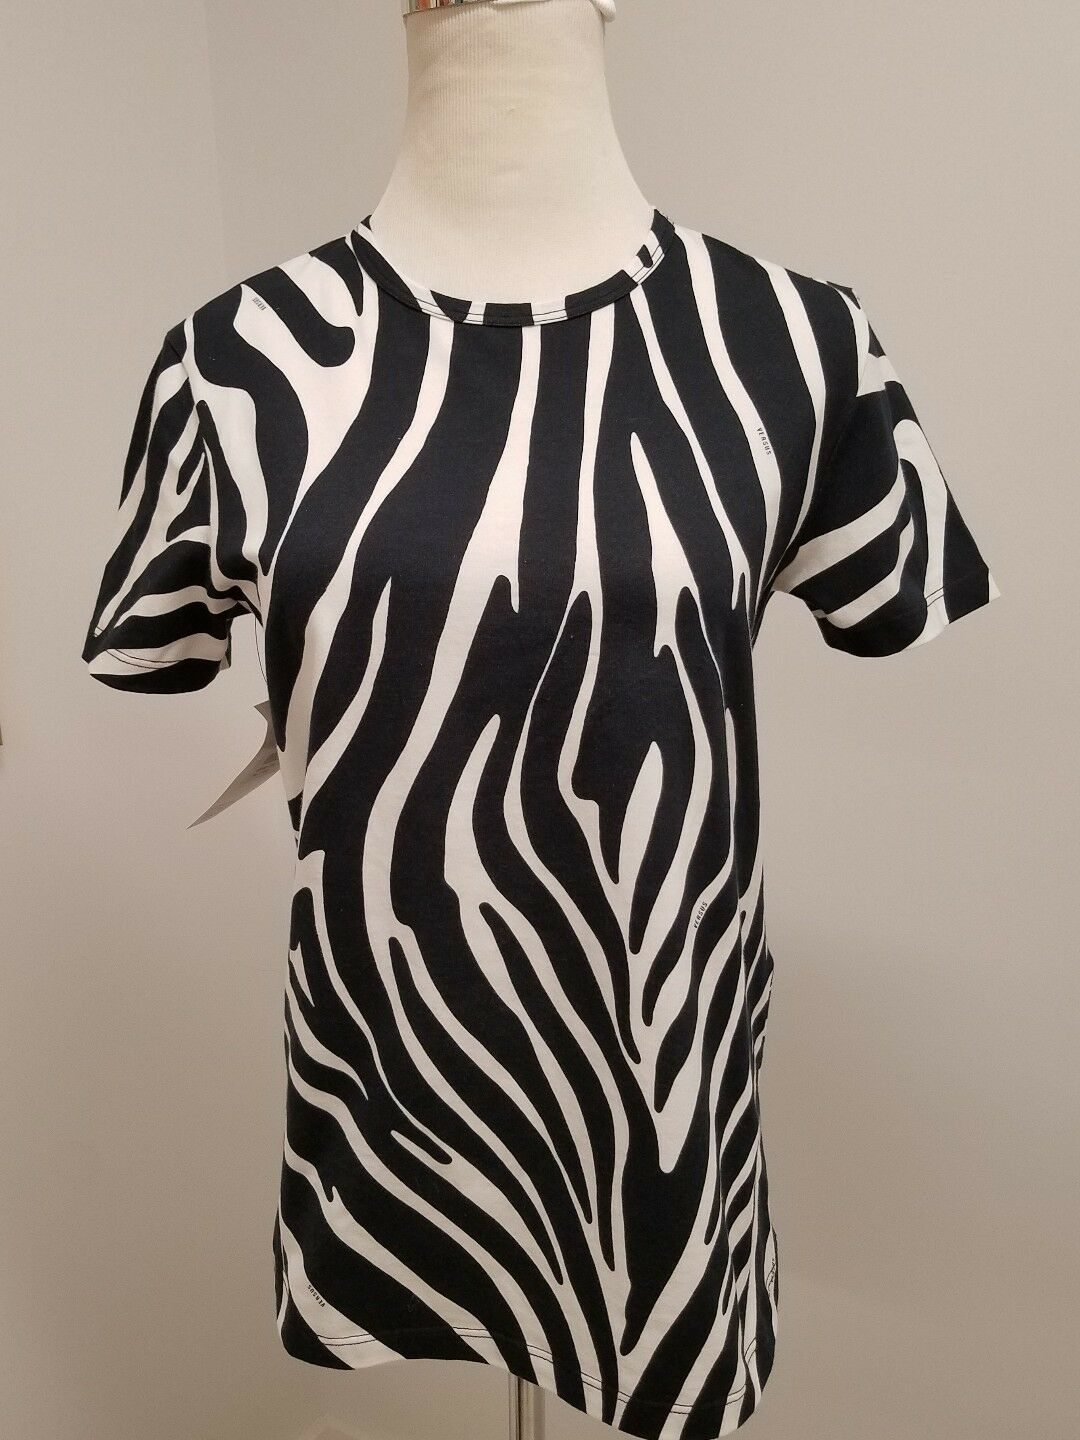 NEW Versus Versace Woherren schwarz Weiß Zebra Stretch  T-Shirt Medium Small Lrg